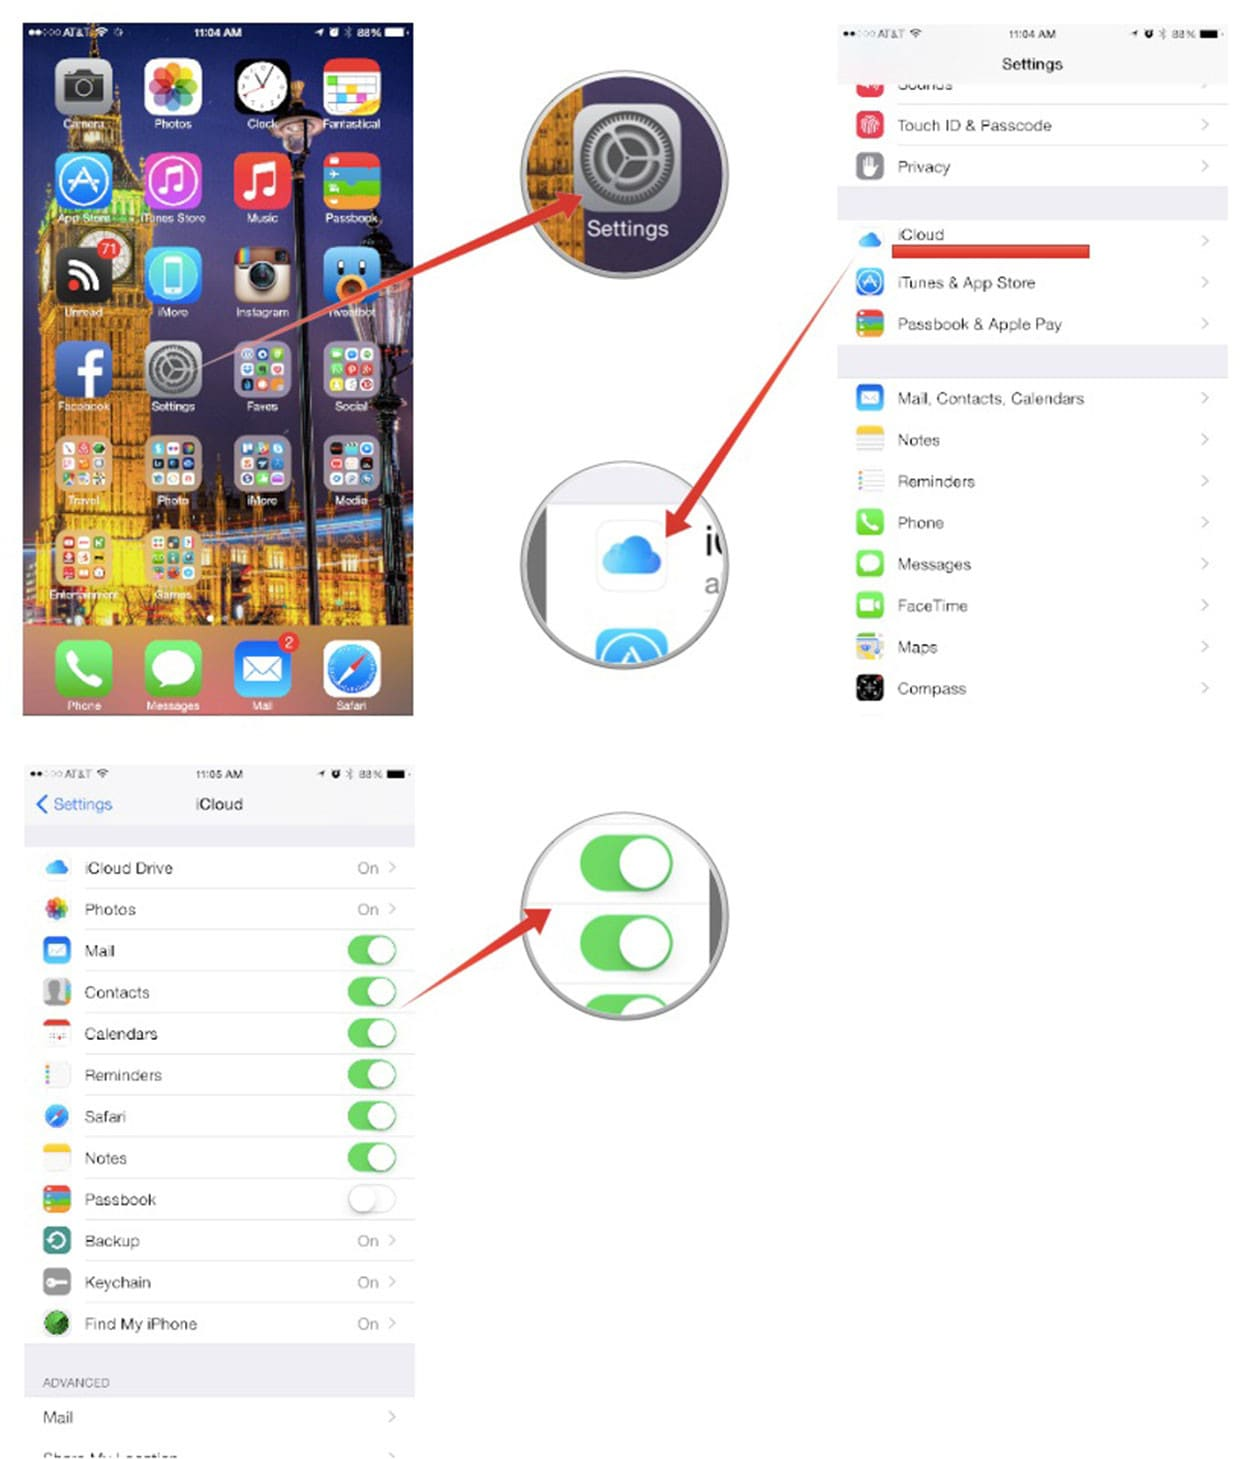 sync_icloud_mail_reminders_contacts_more_howto_updated